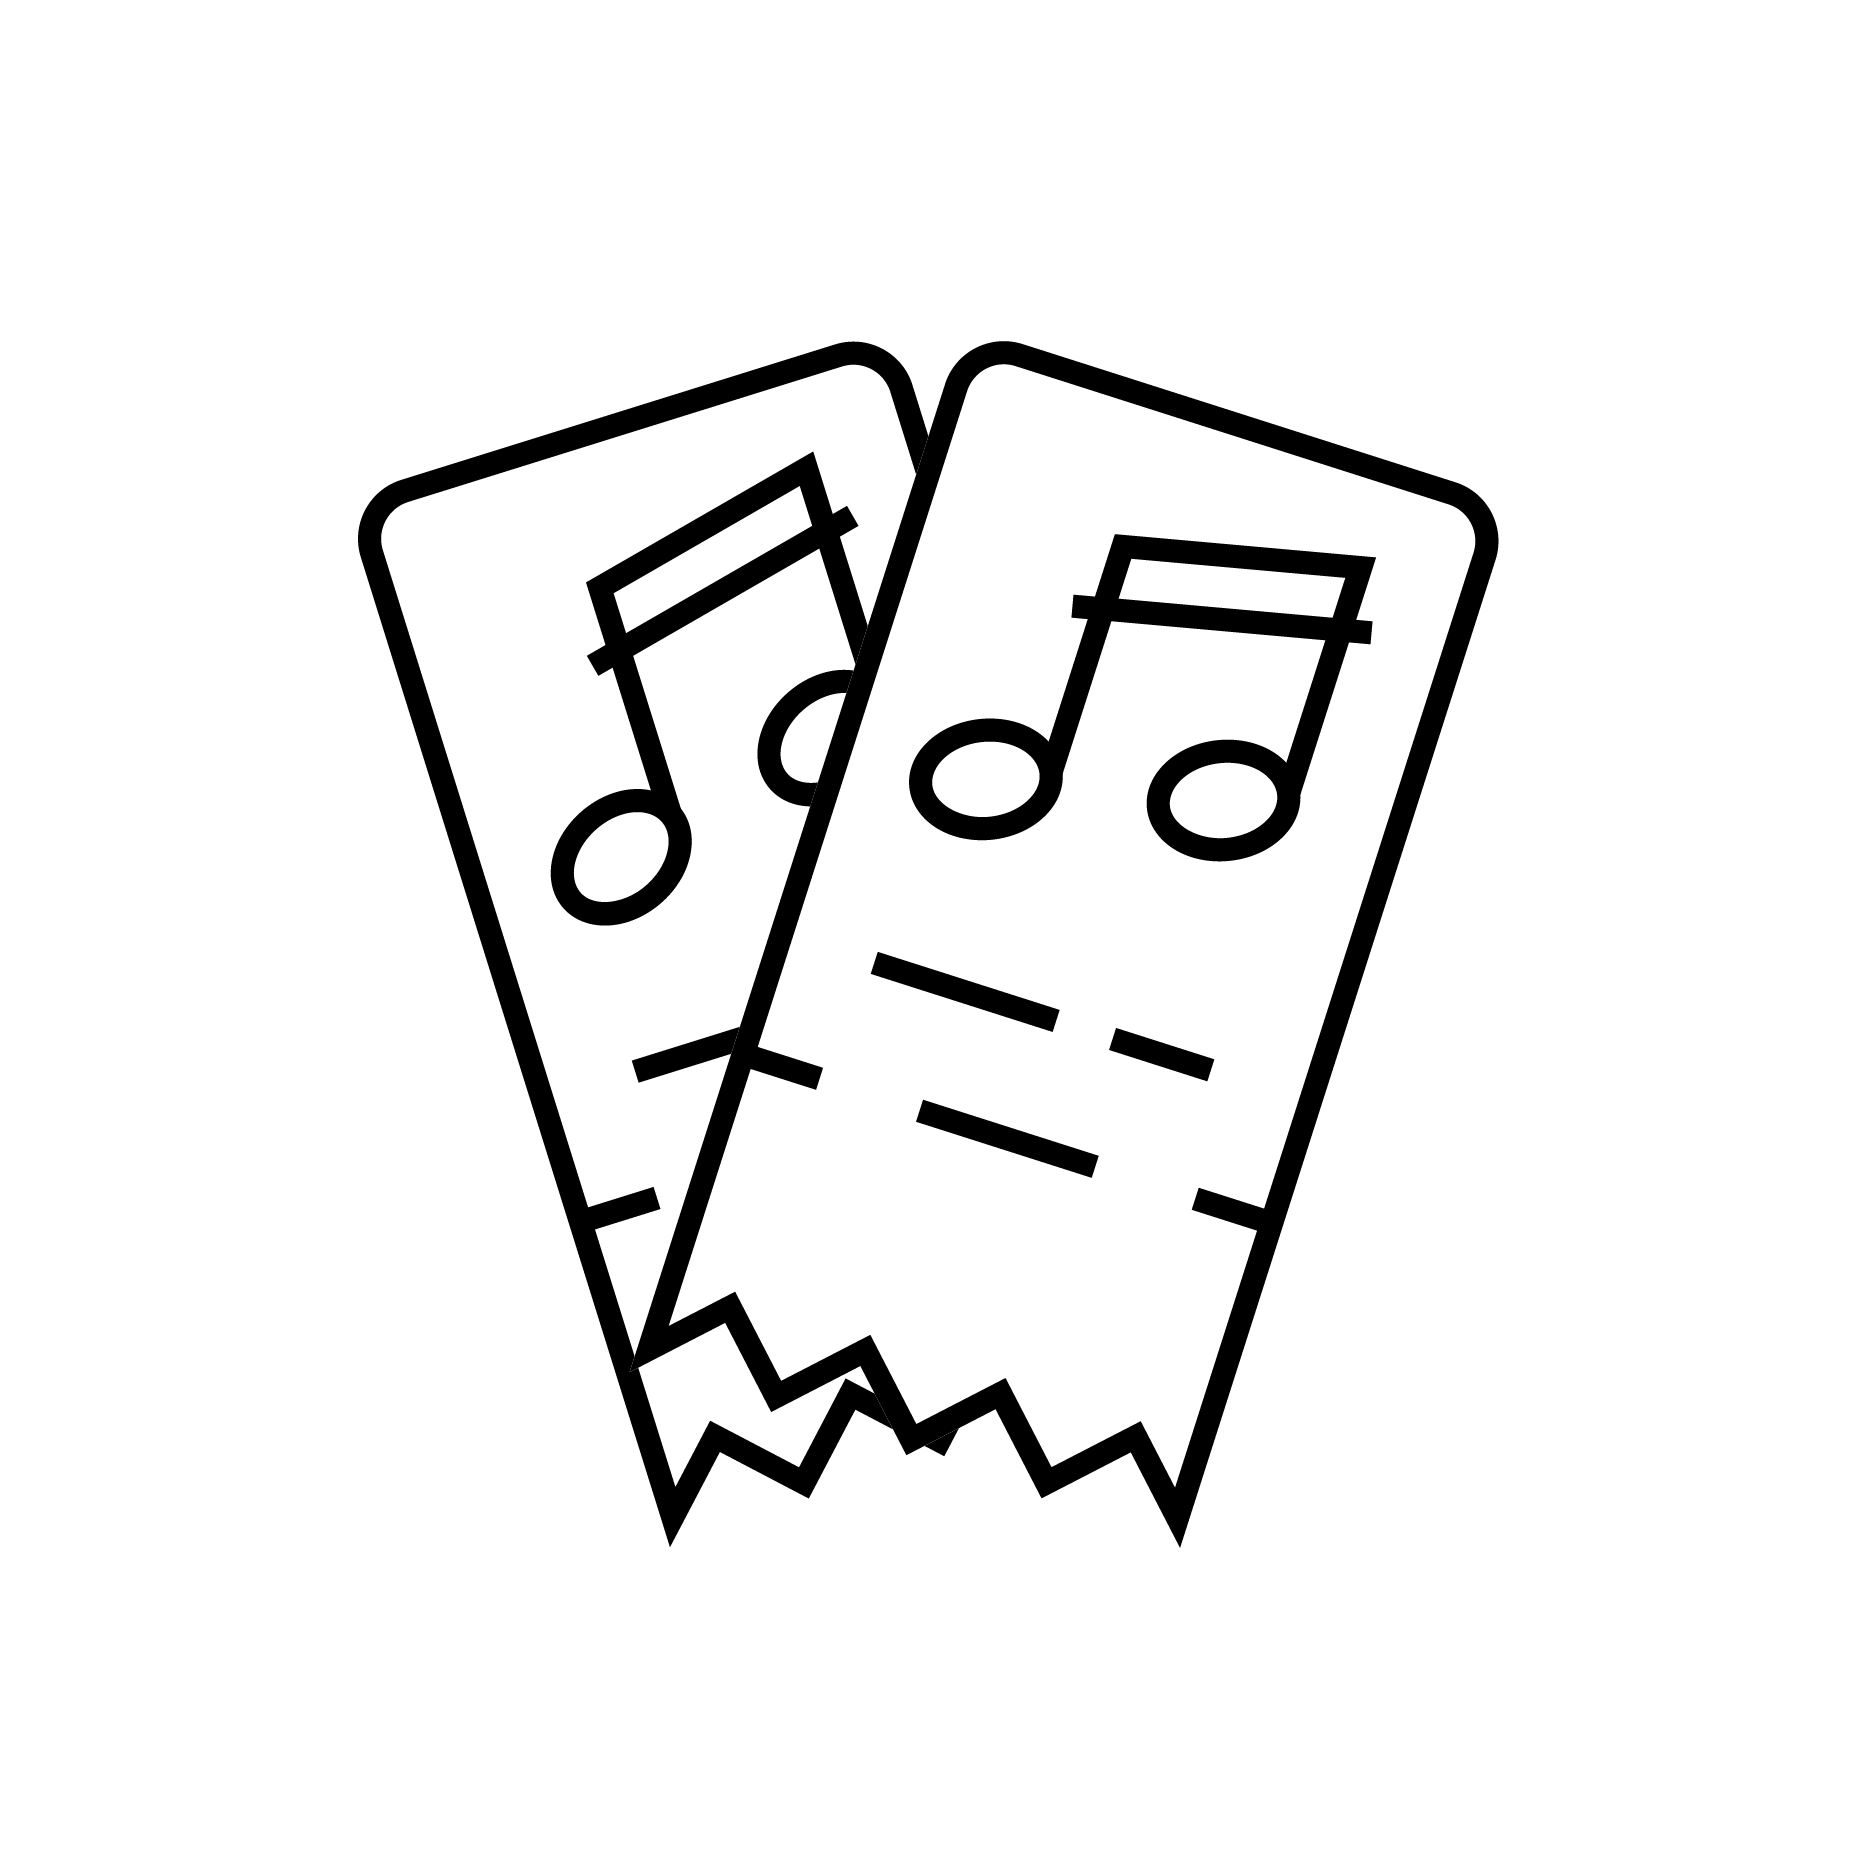 Icons-outlined-04.png